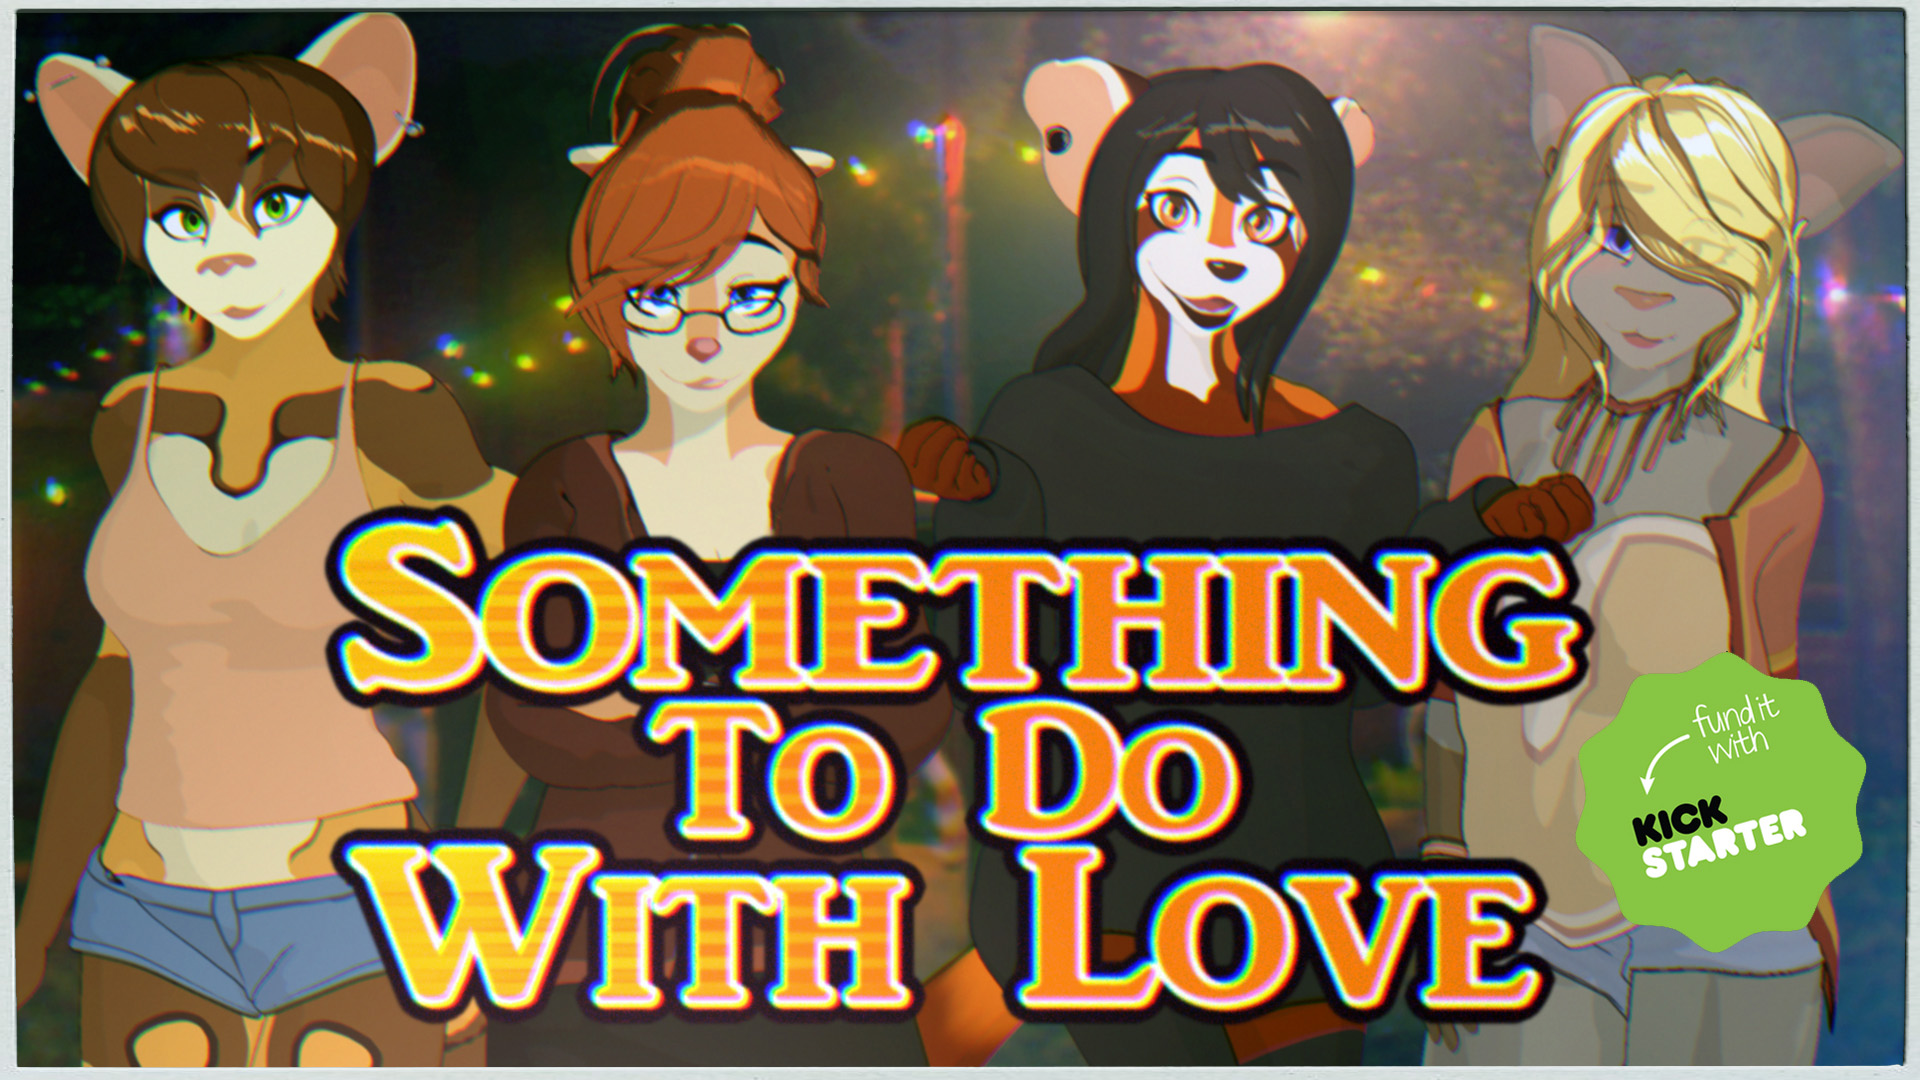 Something To Do With Love Kickstarter